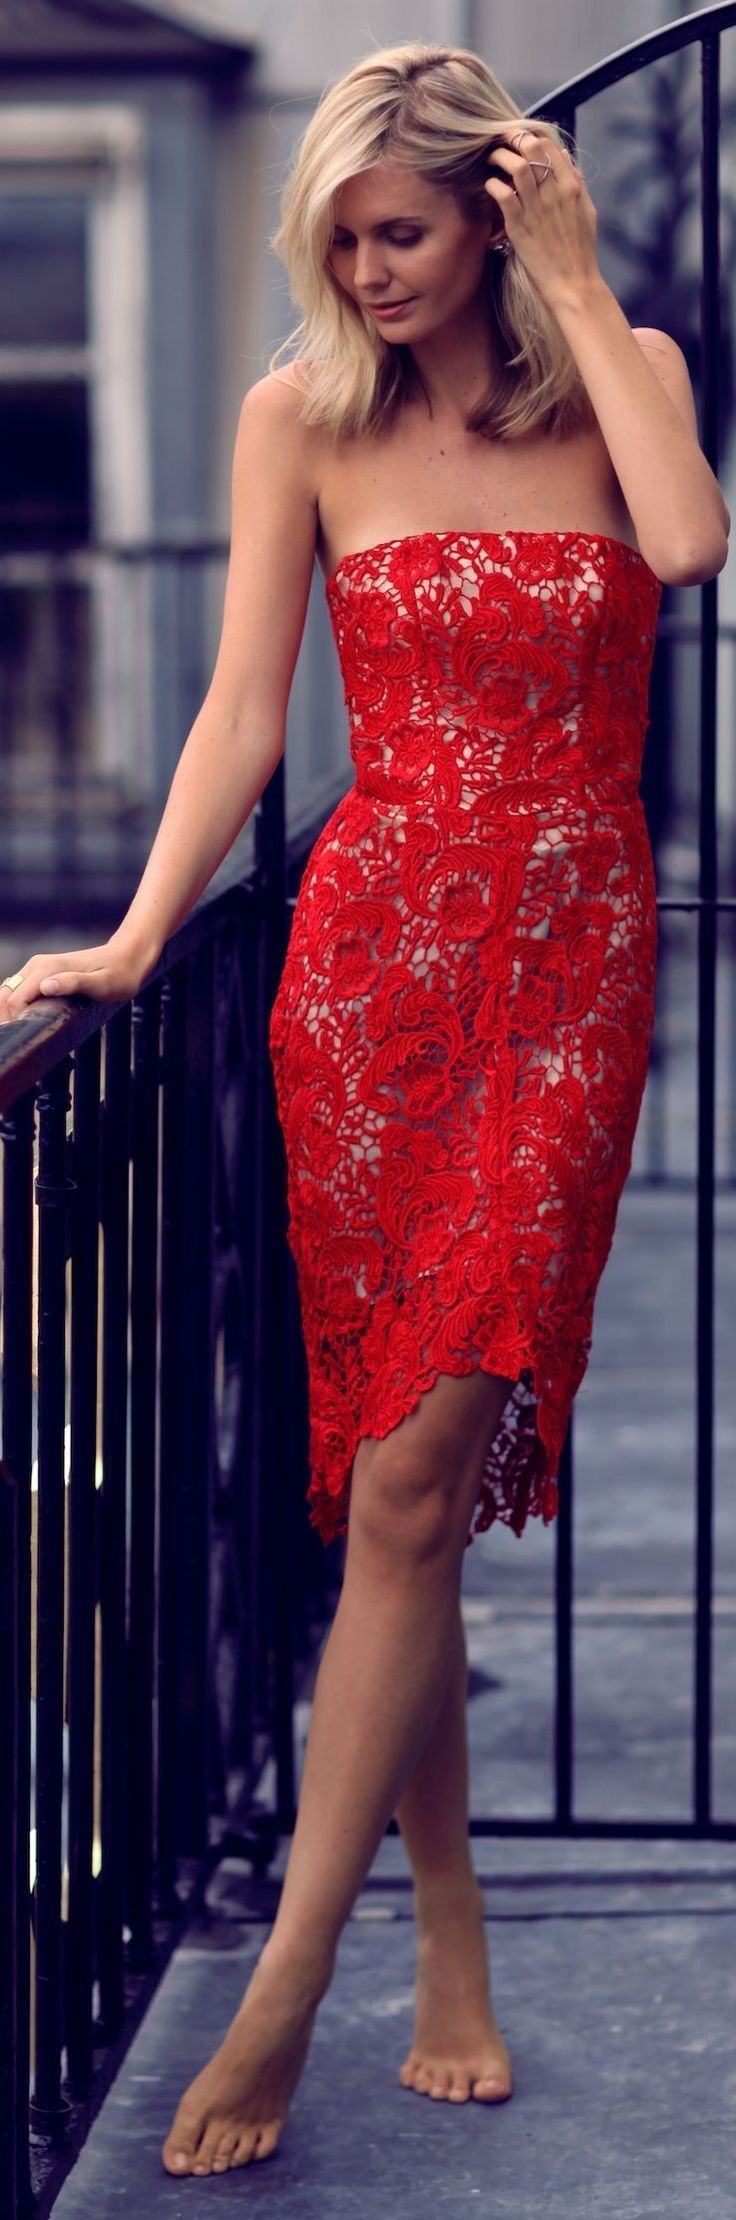 Tuula vintage red lace bodycon off shoulder midi dress red prom